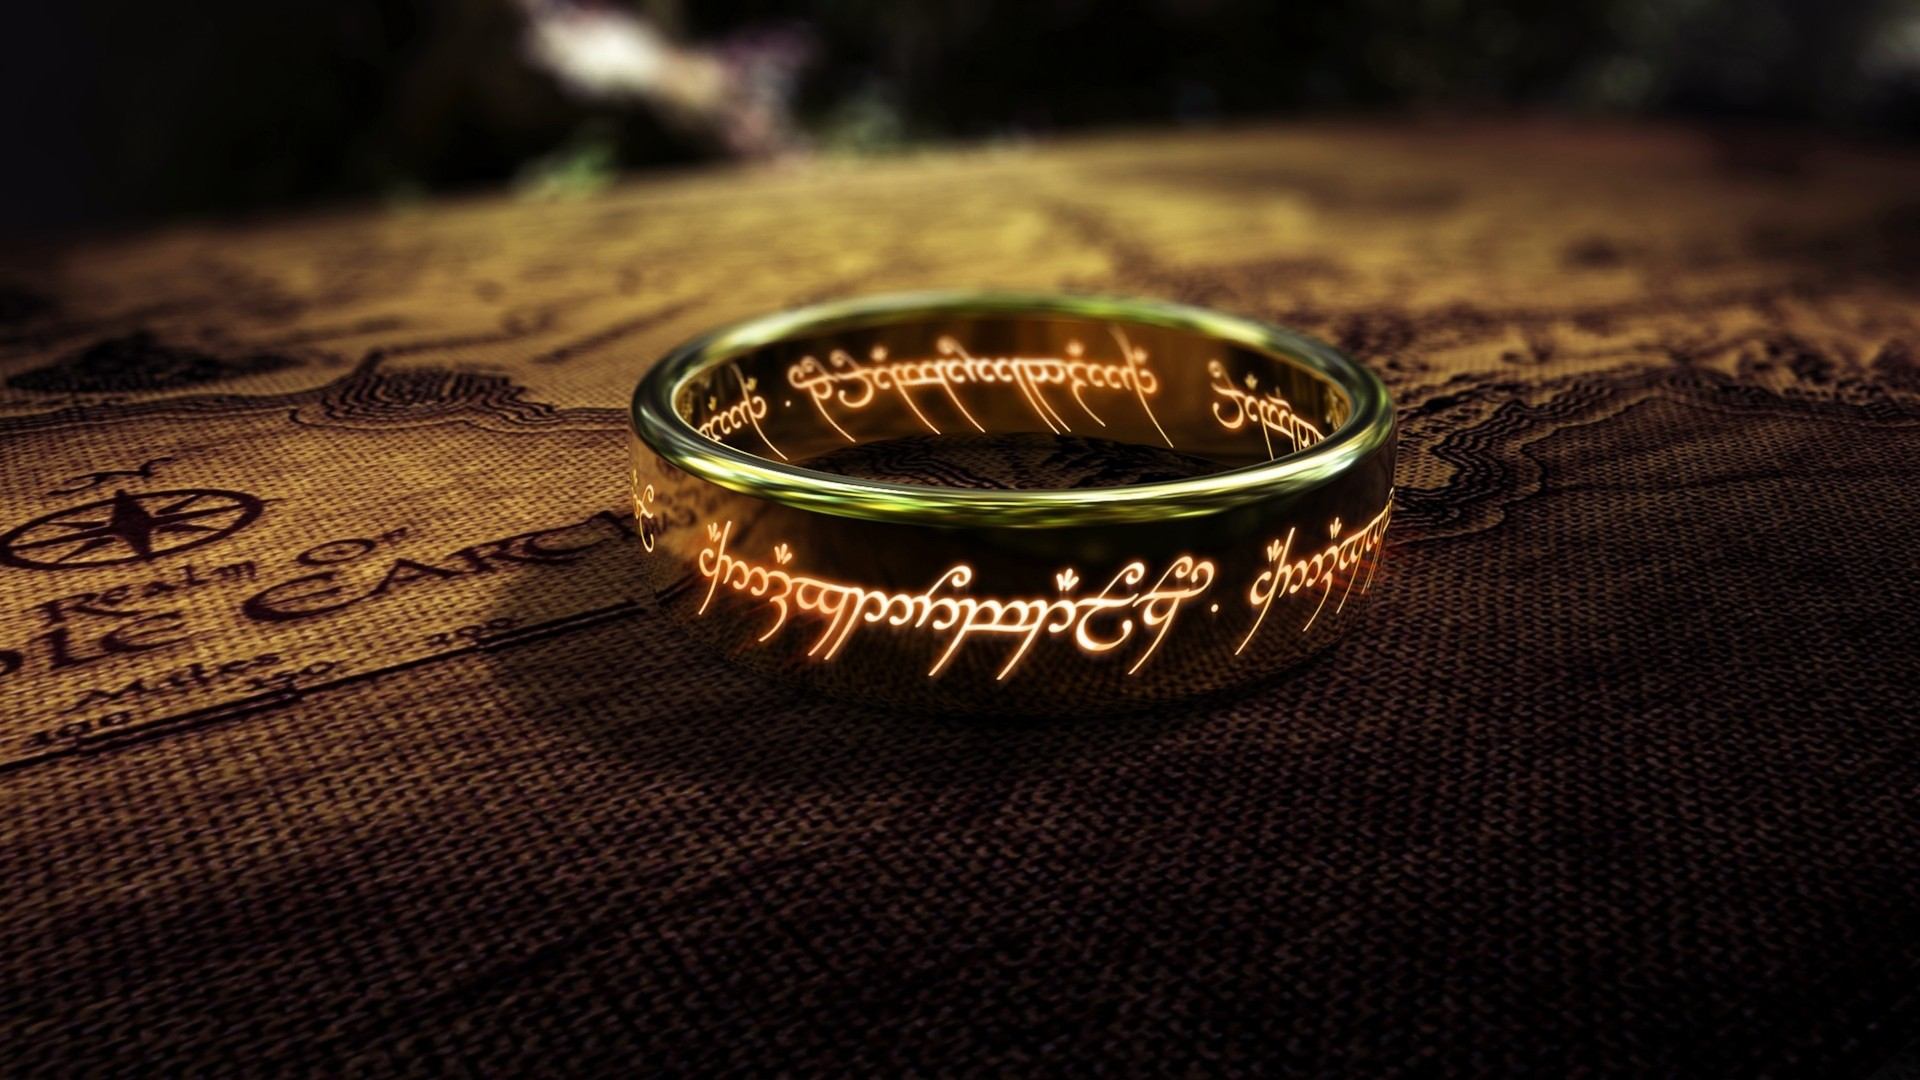 The Lord of the Rings Ring 1920x1080